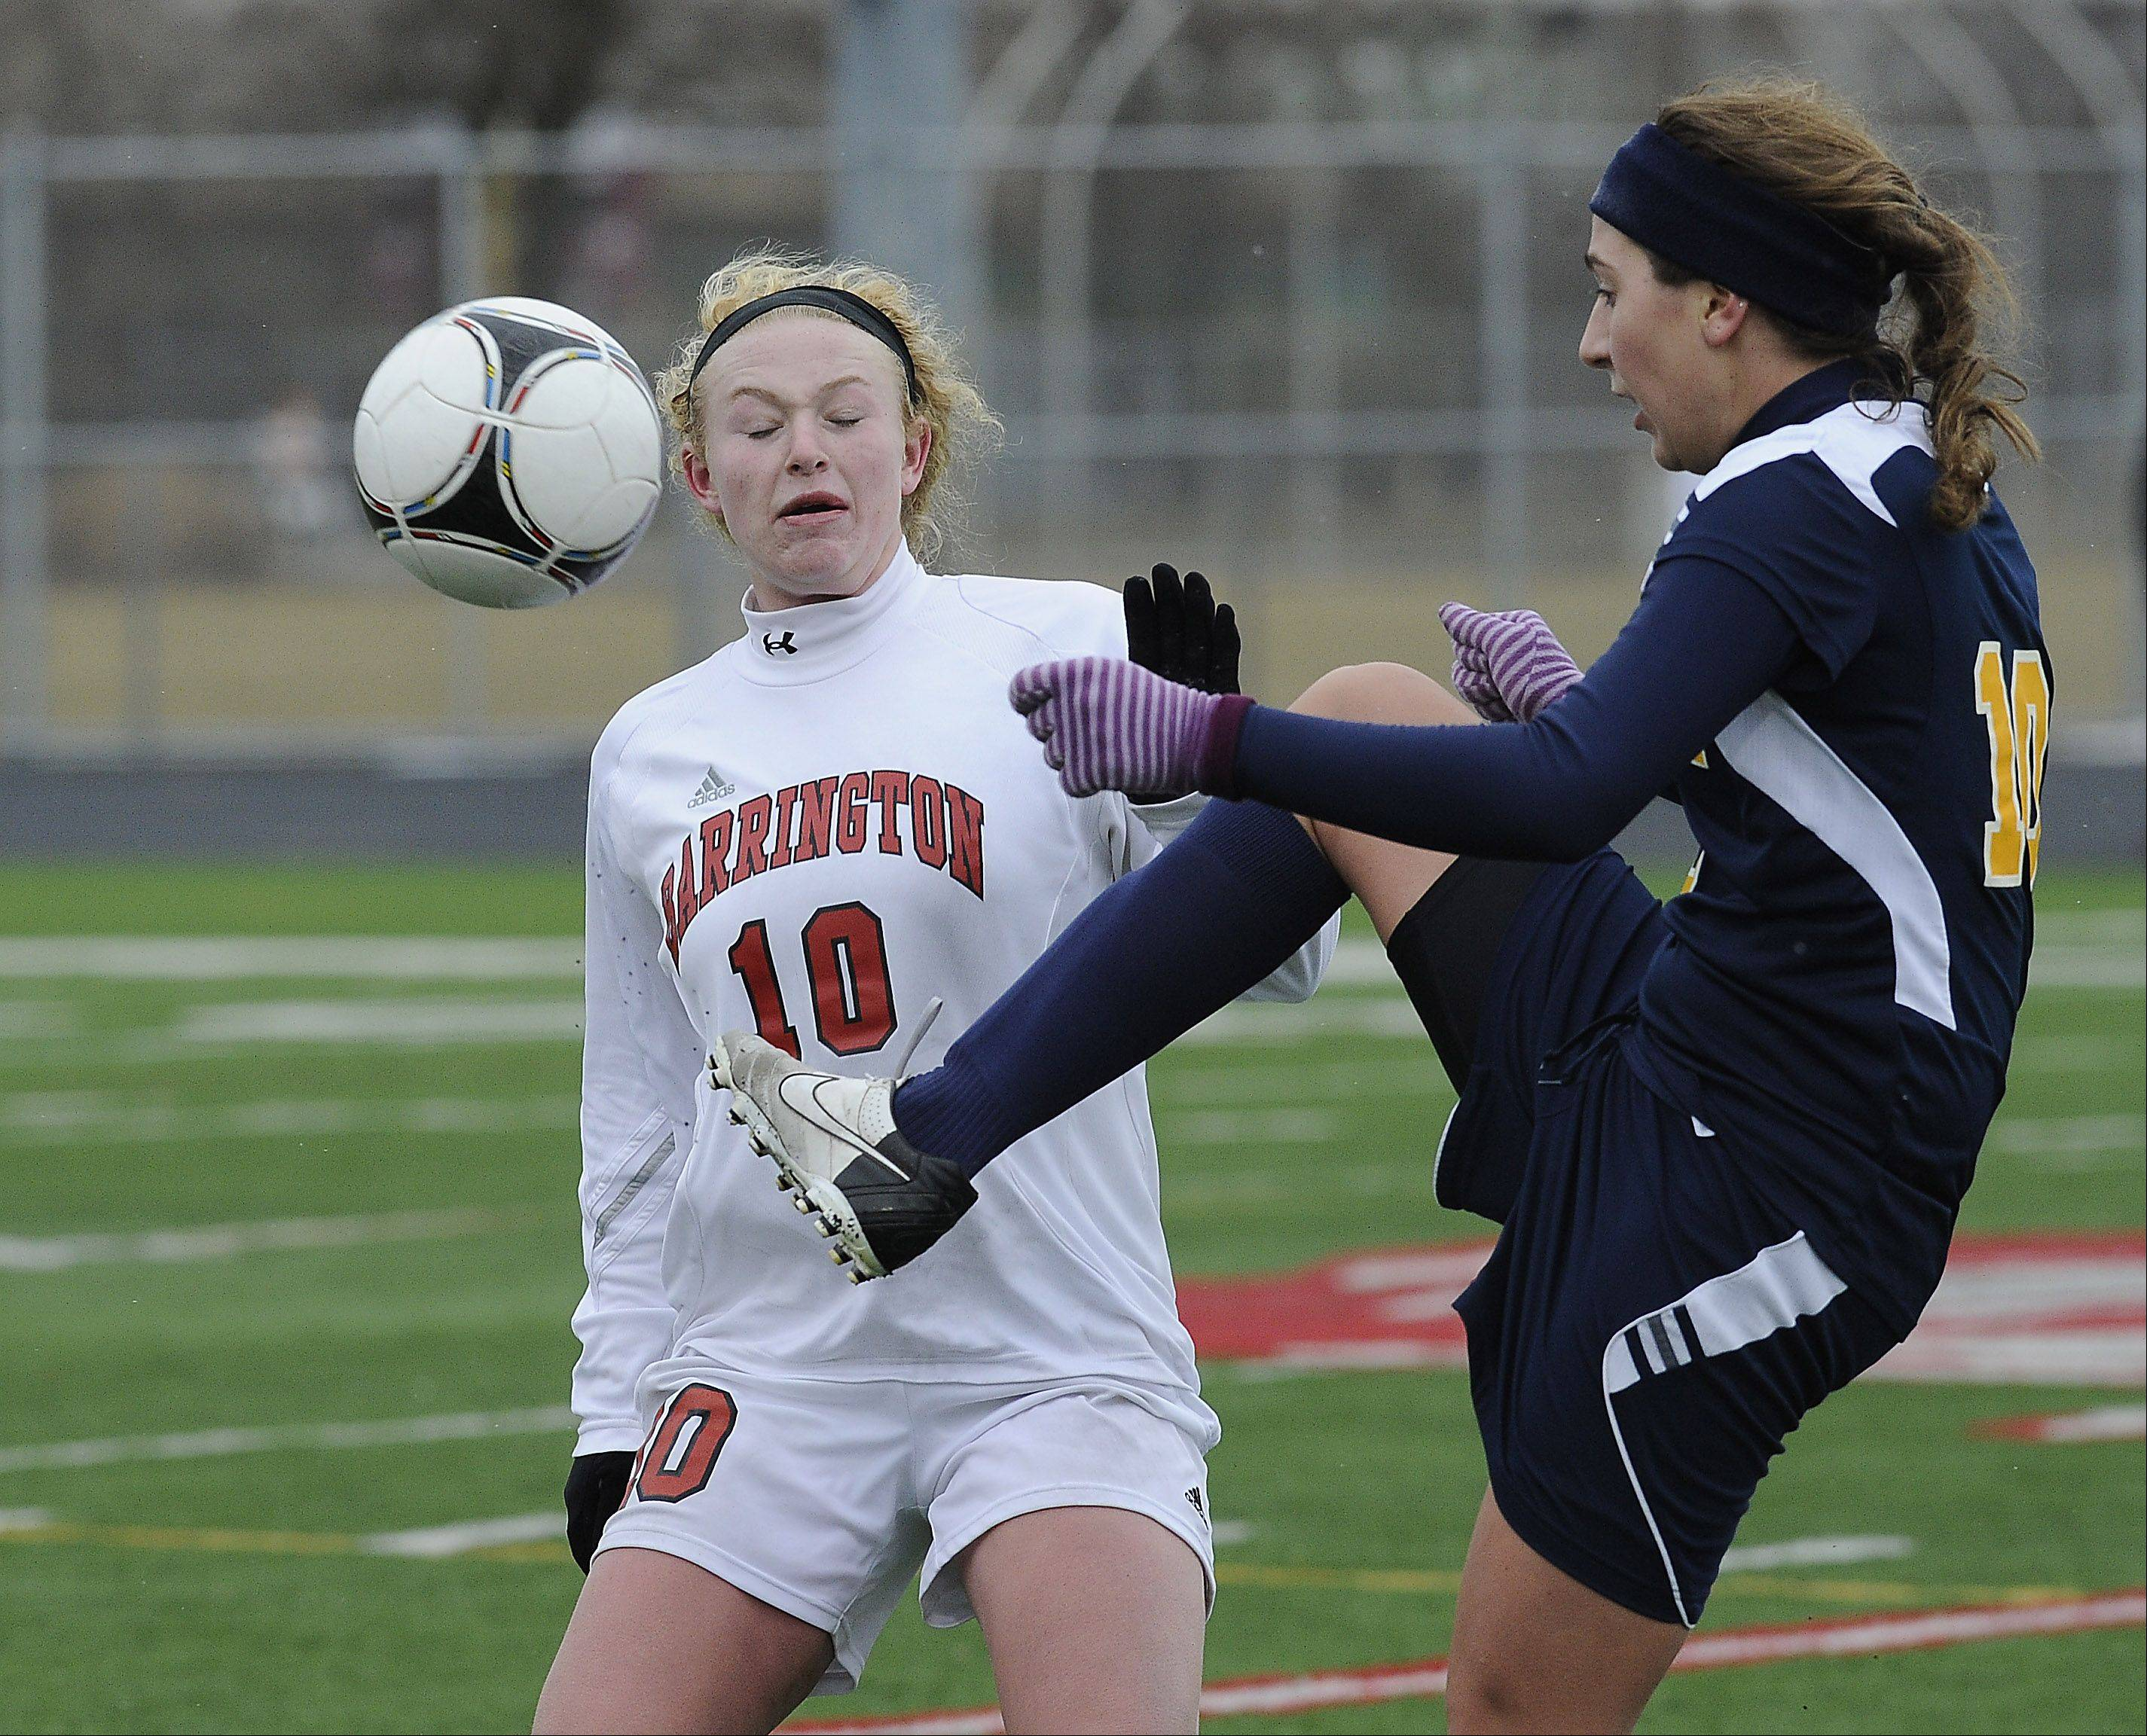 Molly Pfeiffer nearly gets kicked as Neuqua Valley's Brooke Ksiazek takes control of the ball in the second half at Barrington on Saturday.